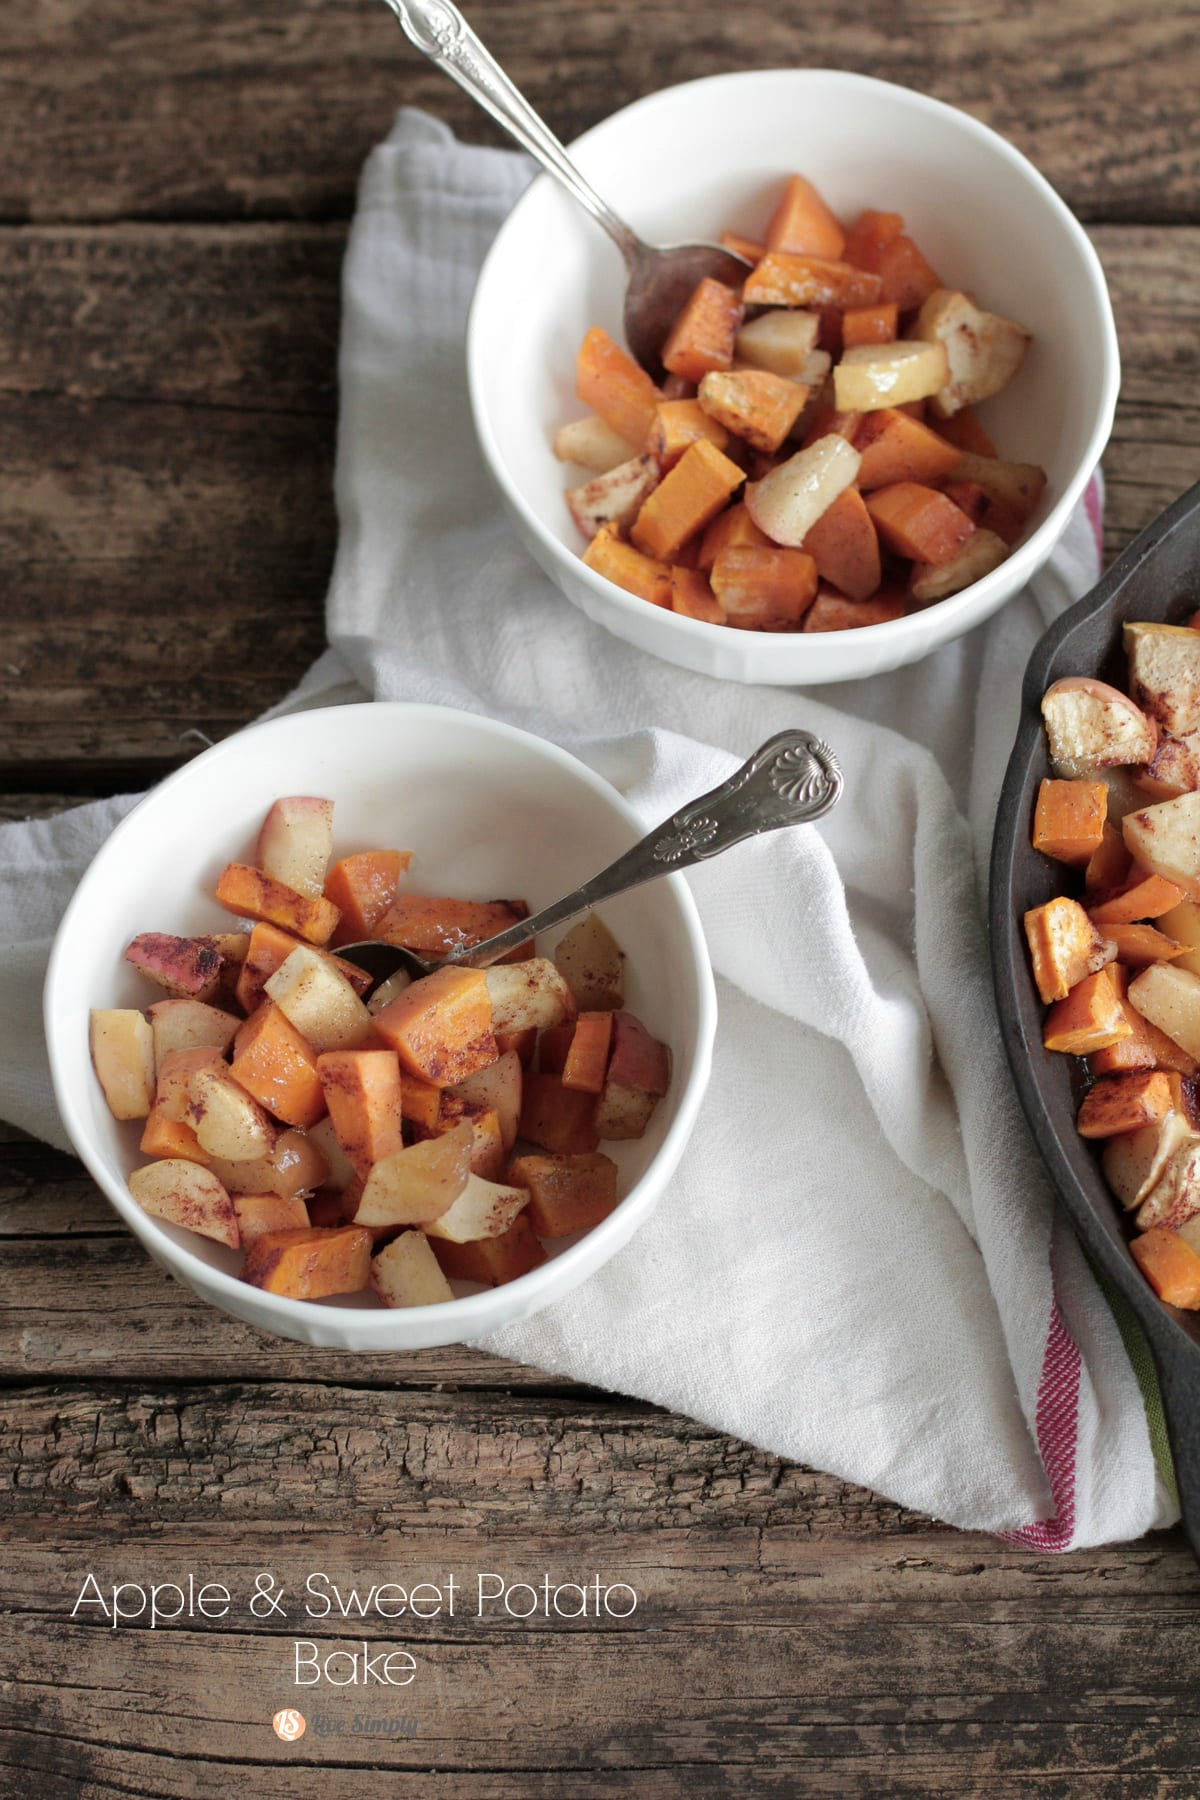 This is so yummy, so easy, and only real ingredients! Apple and Sweet Potato Bake